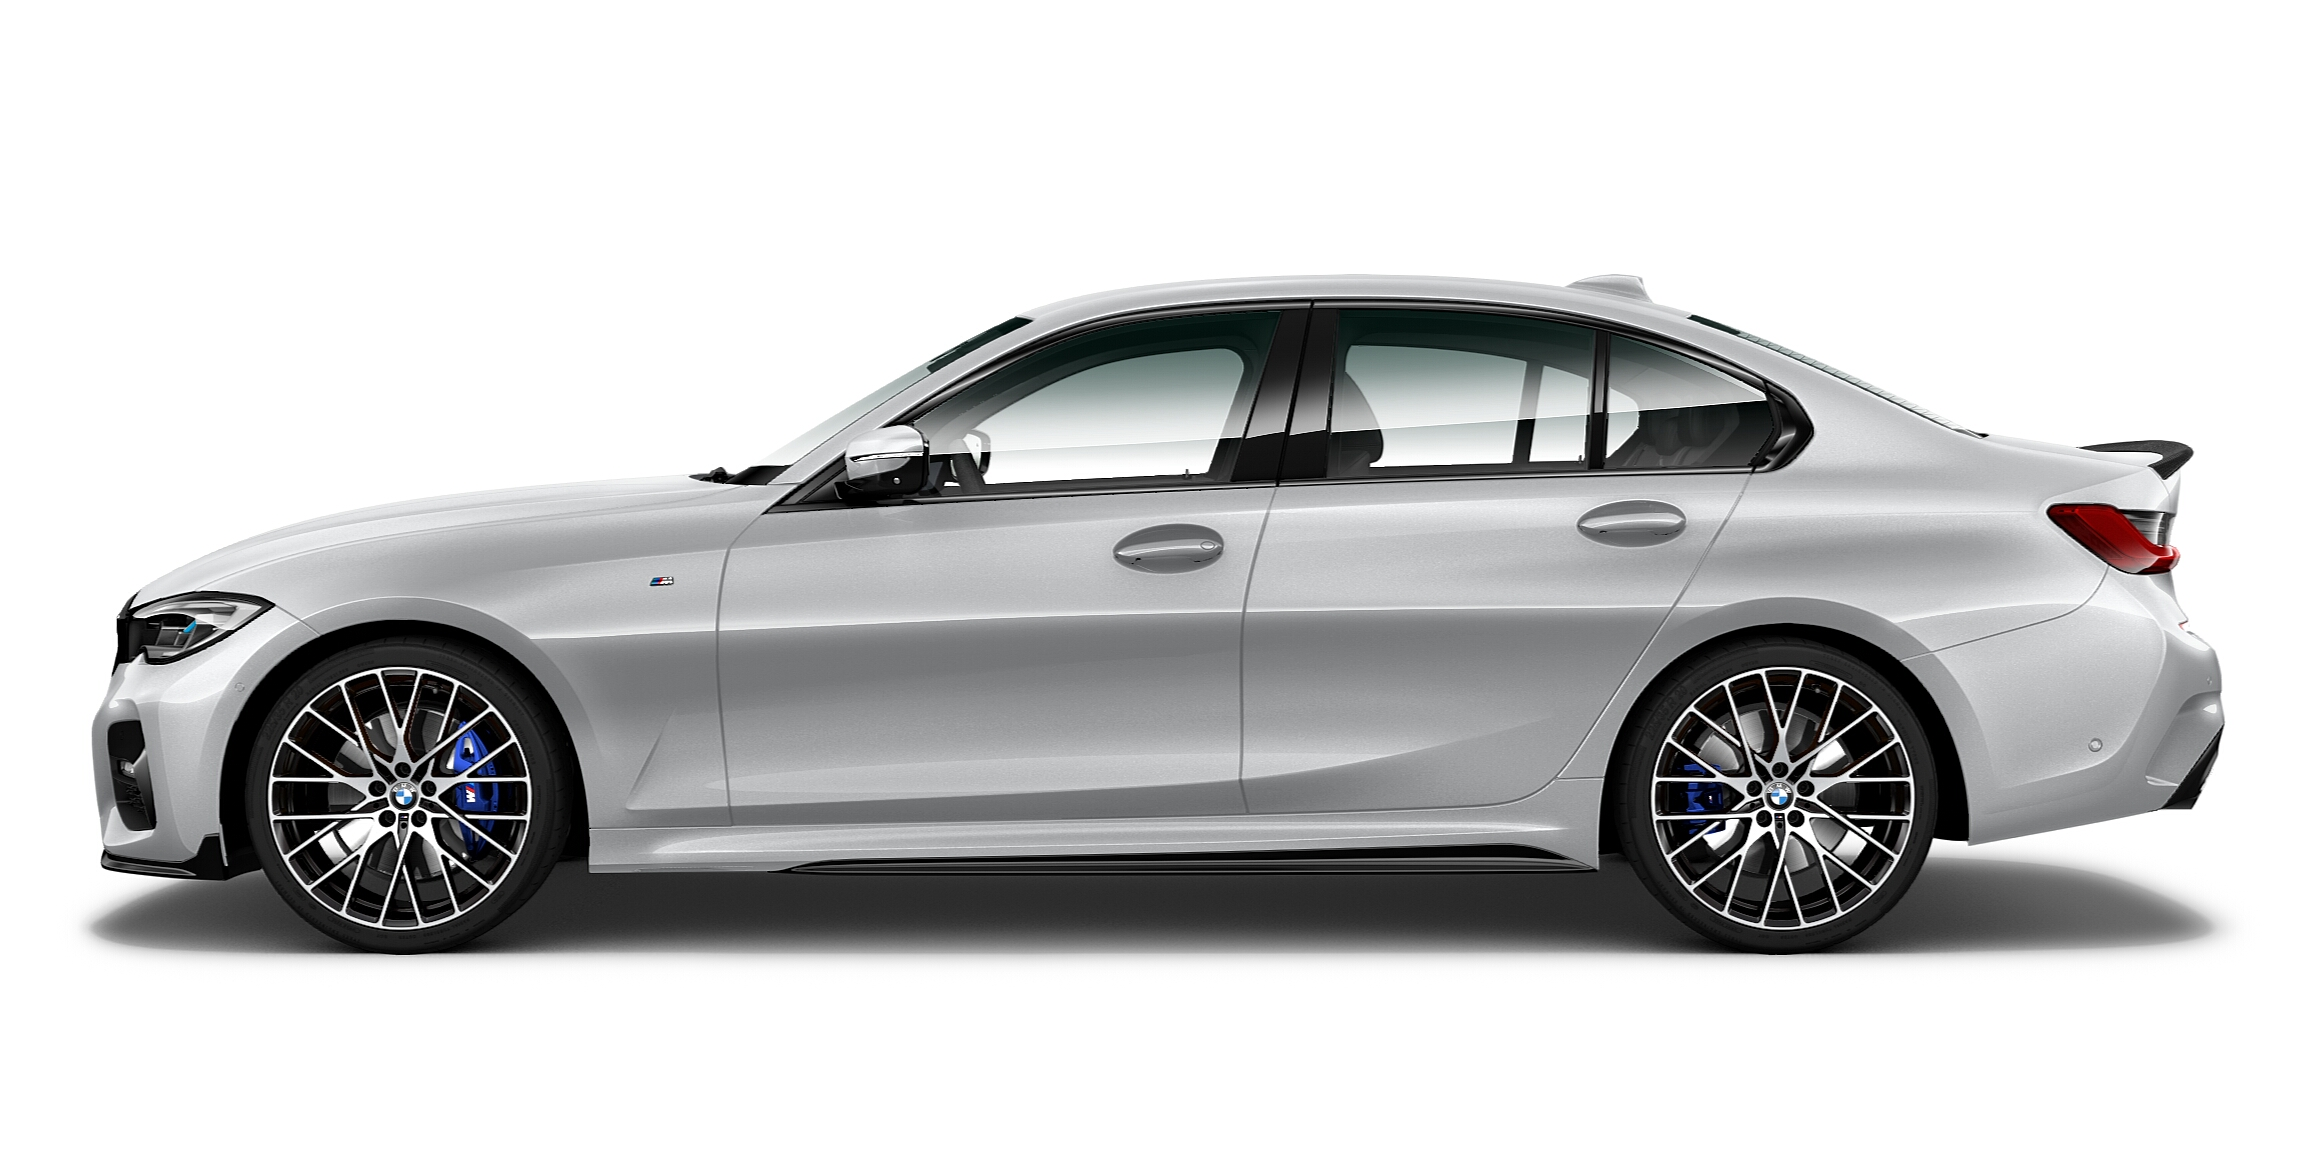 Bmw 330is Edition Limited Production Model Exclusively For South Africa